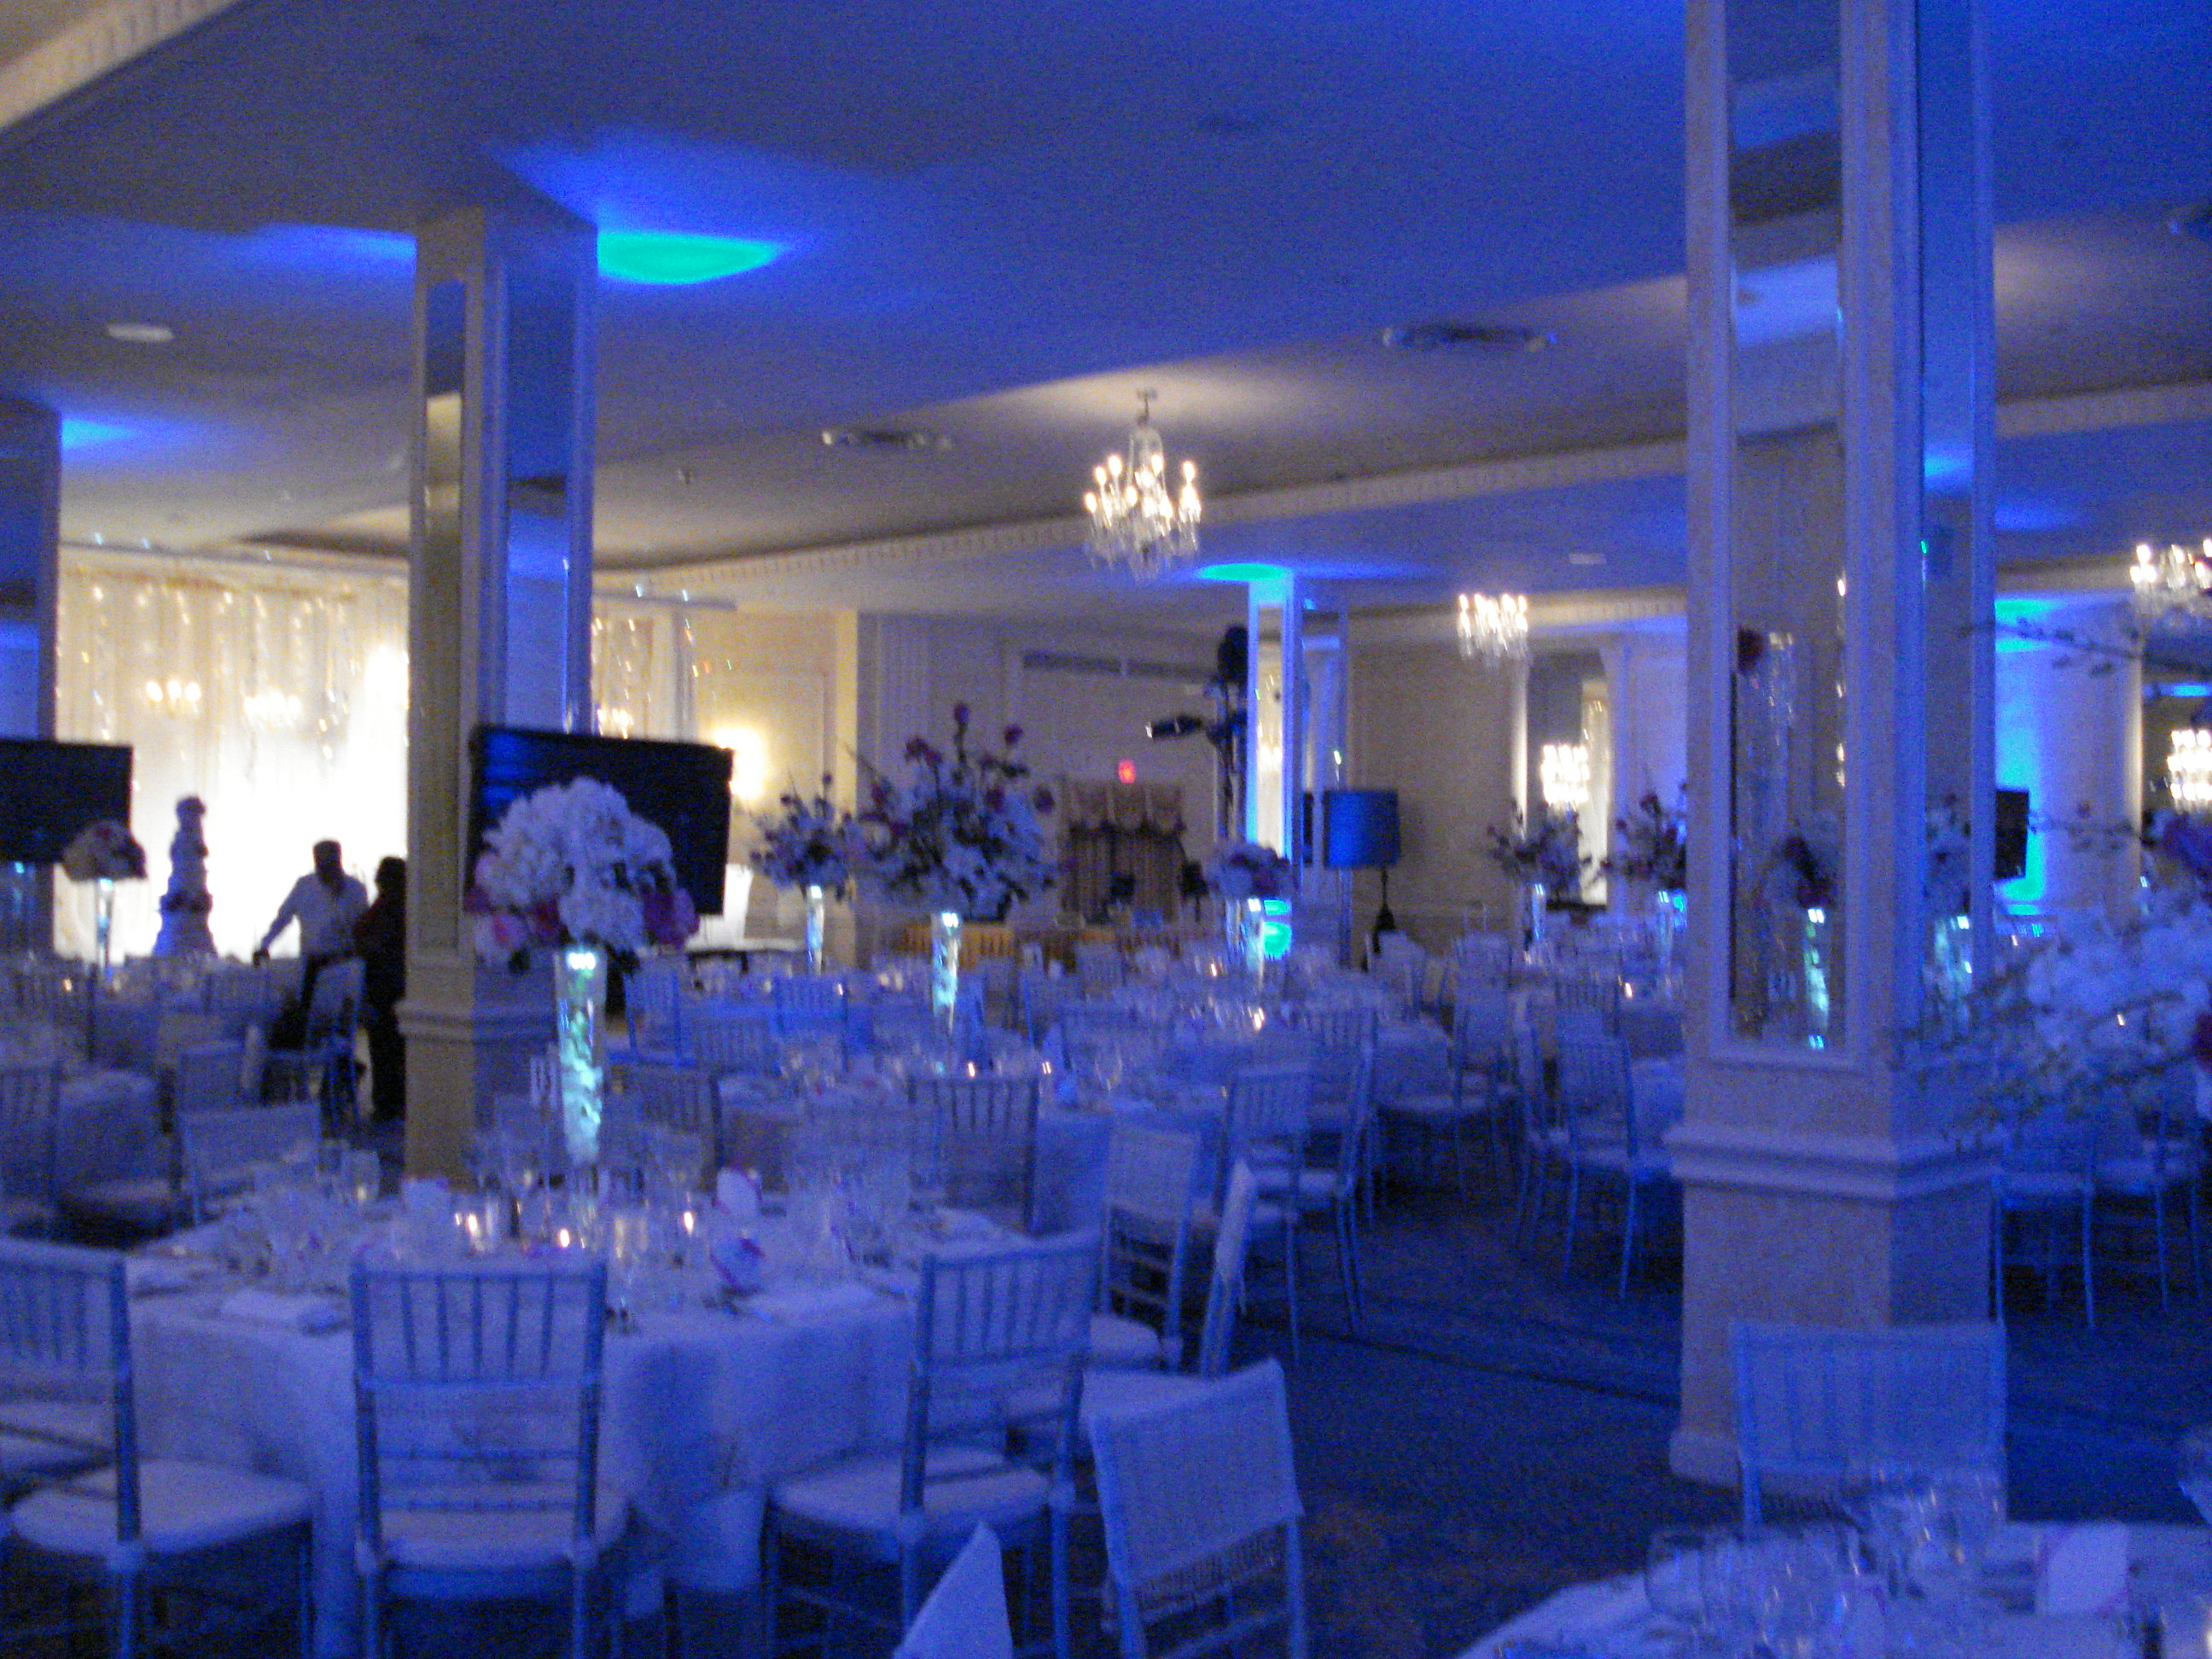 The Blue Room Bathed Ropriately In Lighting Provided Plasma Screens Around So That All Could See Toasts